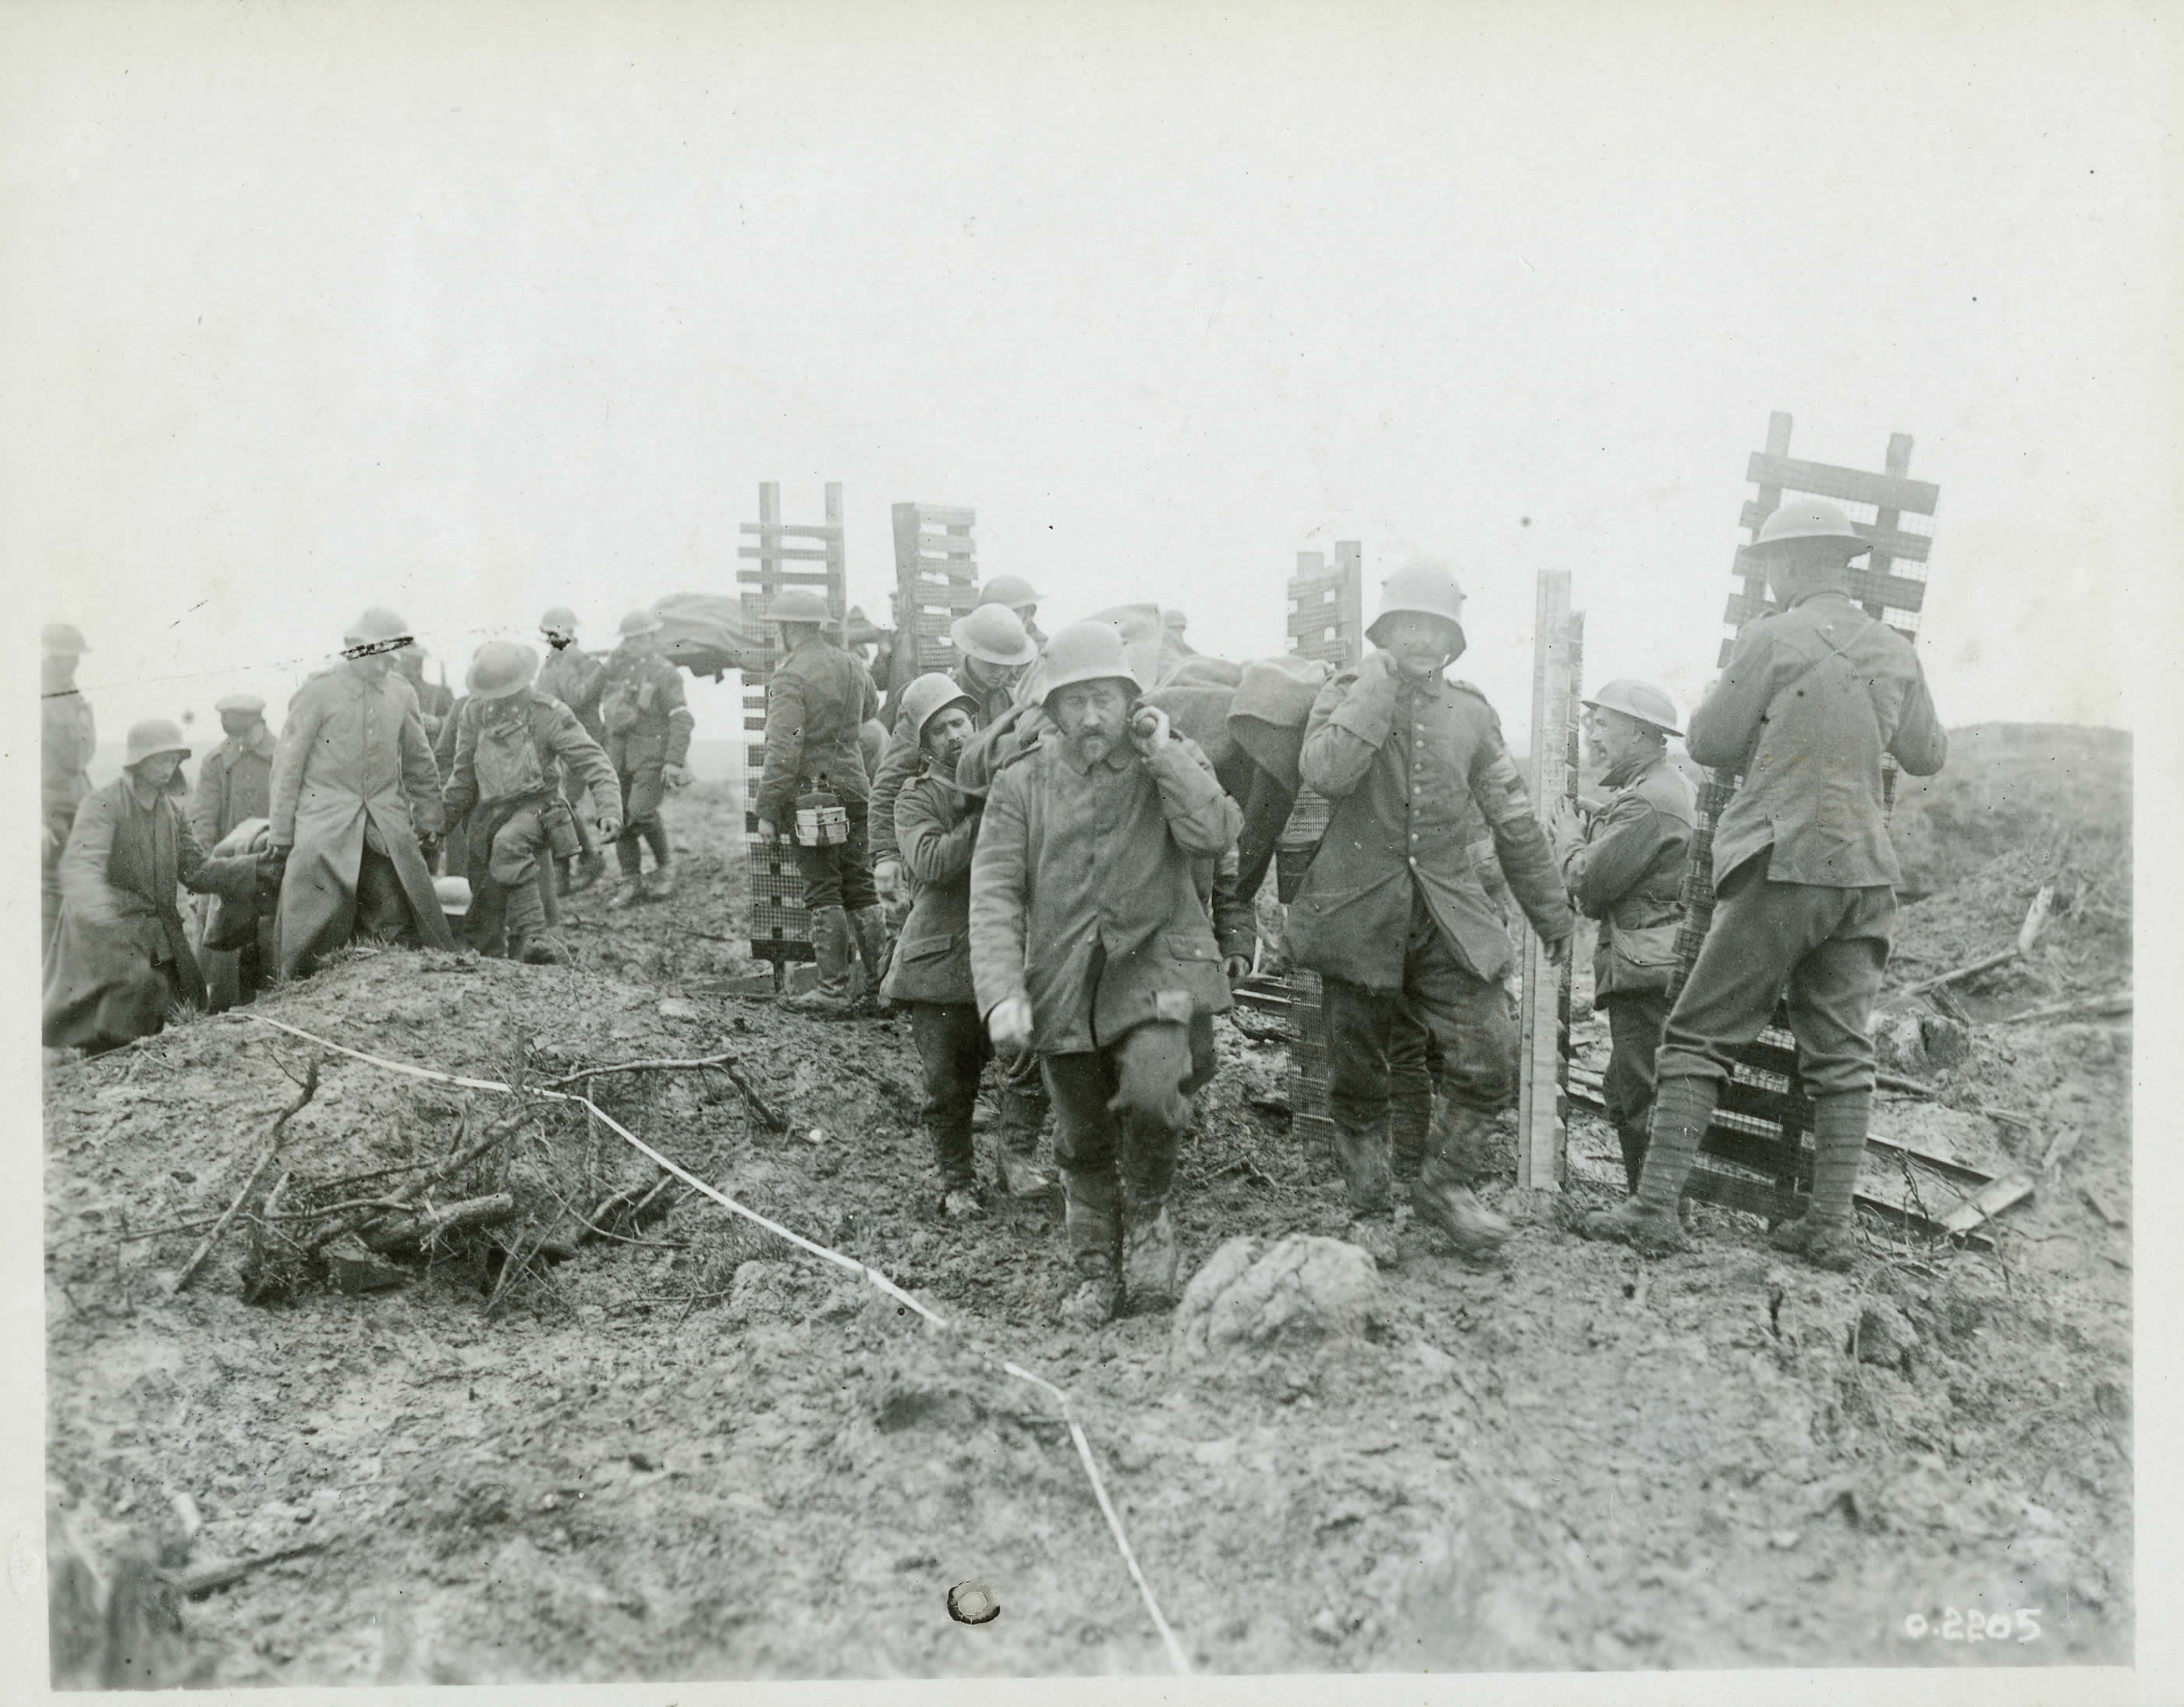 """German prisoners help to carry wounded Canadians away from the front, while Canadians bring forward duckboards or """"trench mats,"""" made of wood overlaid with wire mesh"""